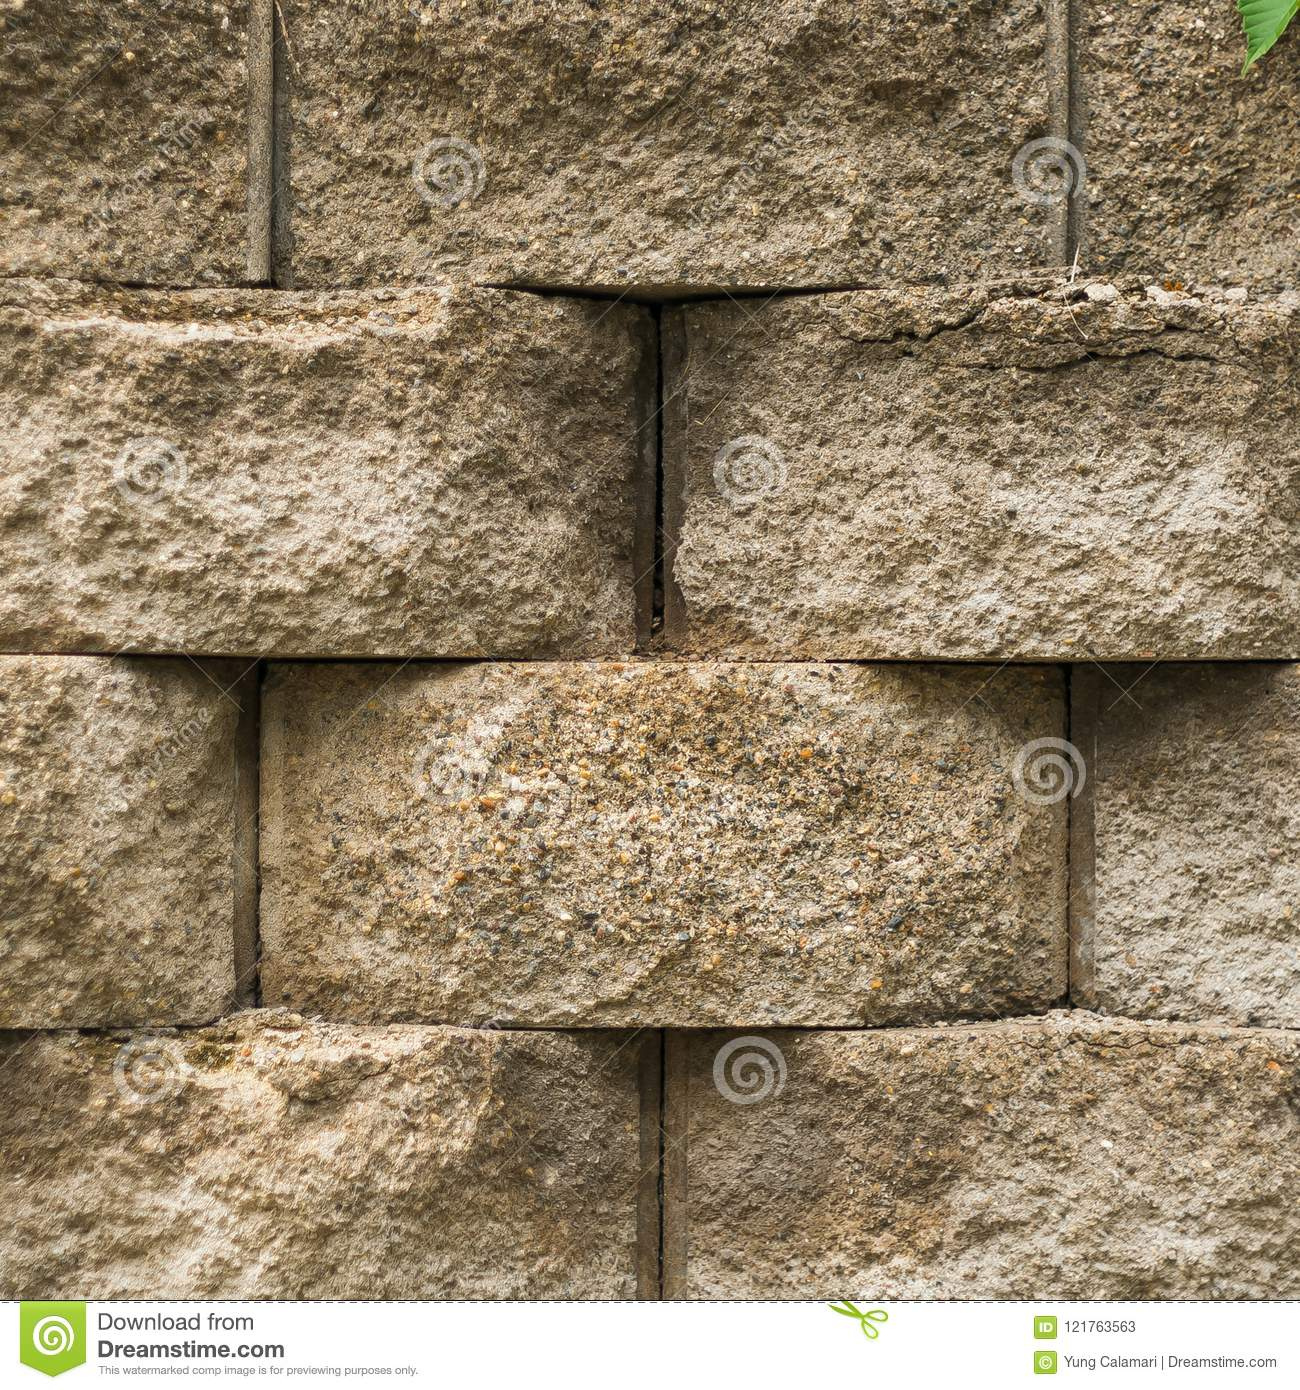 Straight view of landscaping brick texture